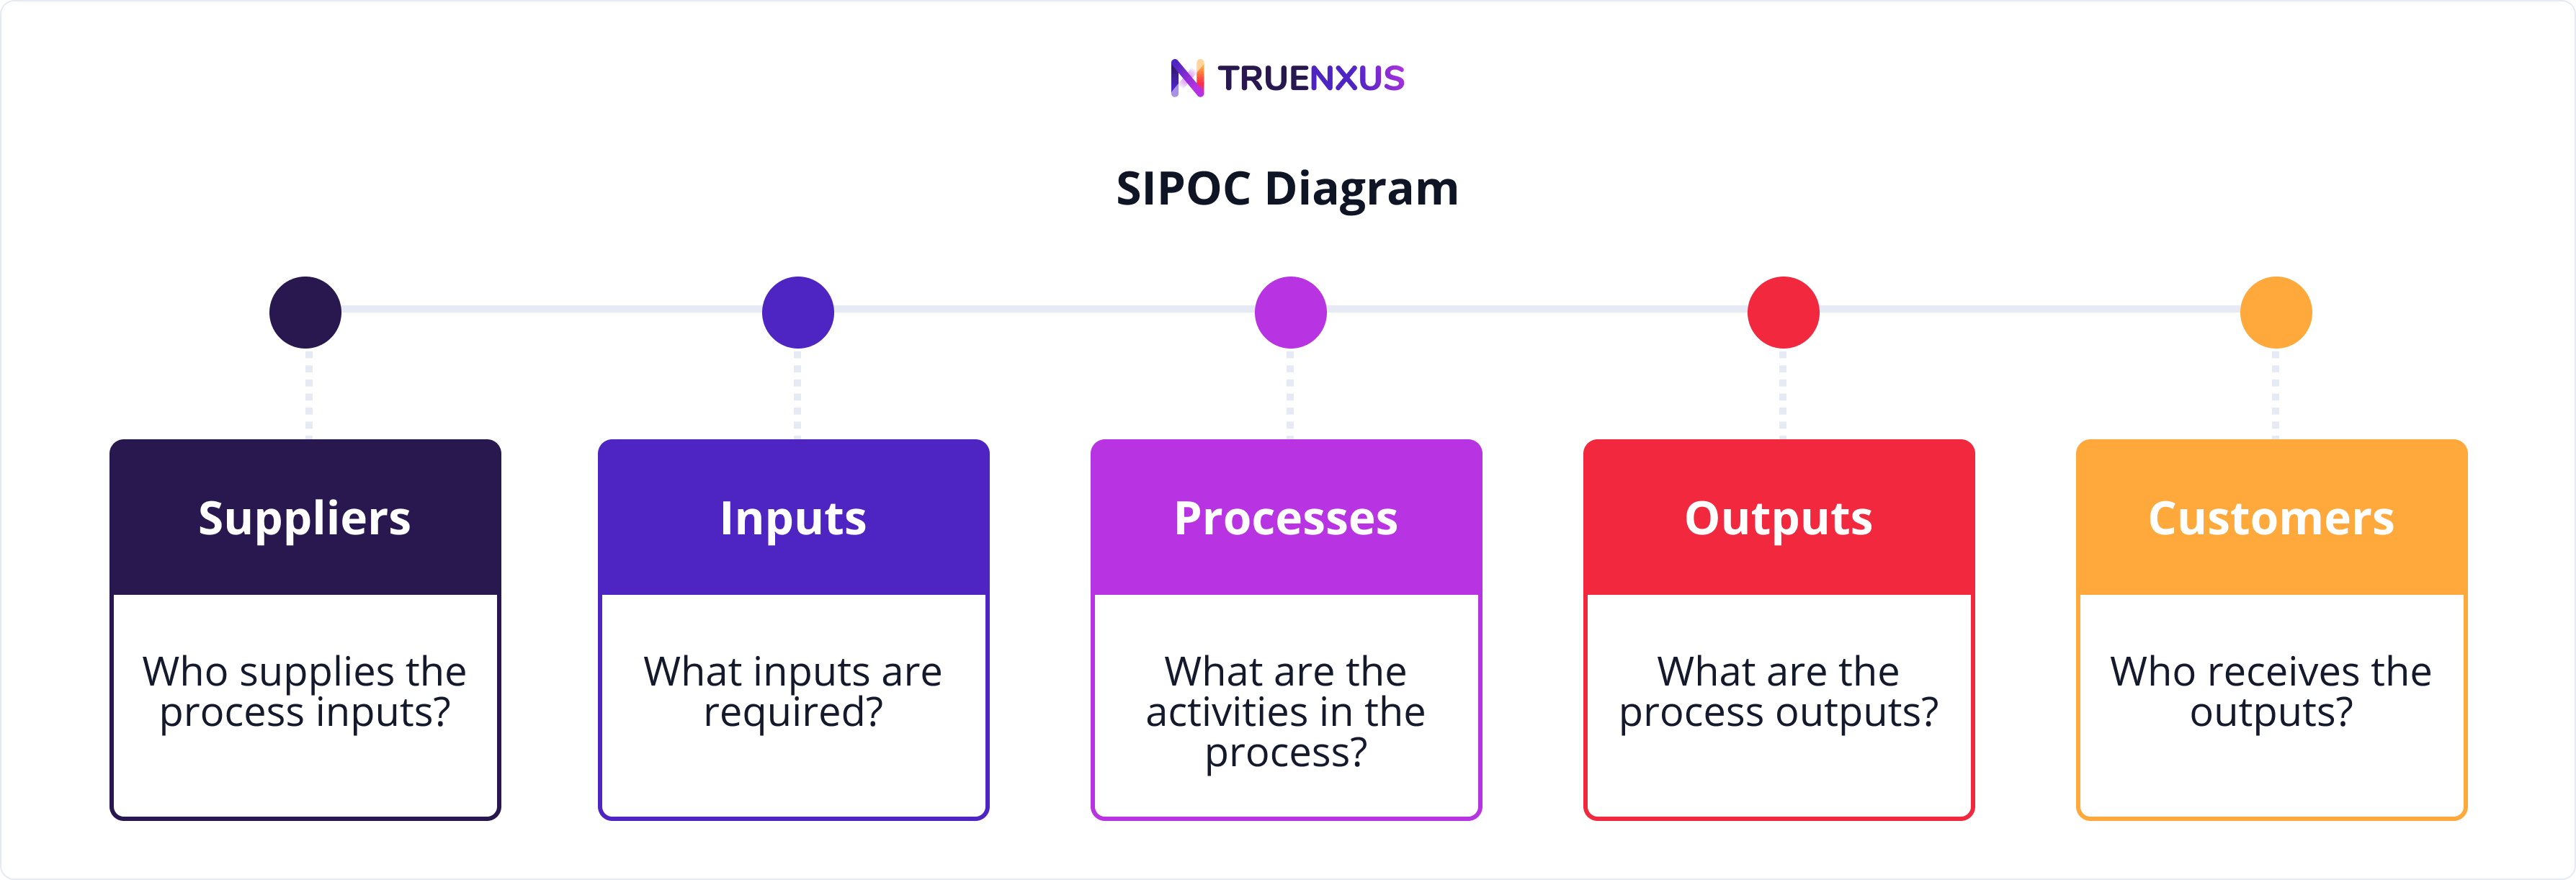 How to create a SIPOC Diagram illustration